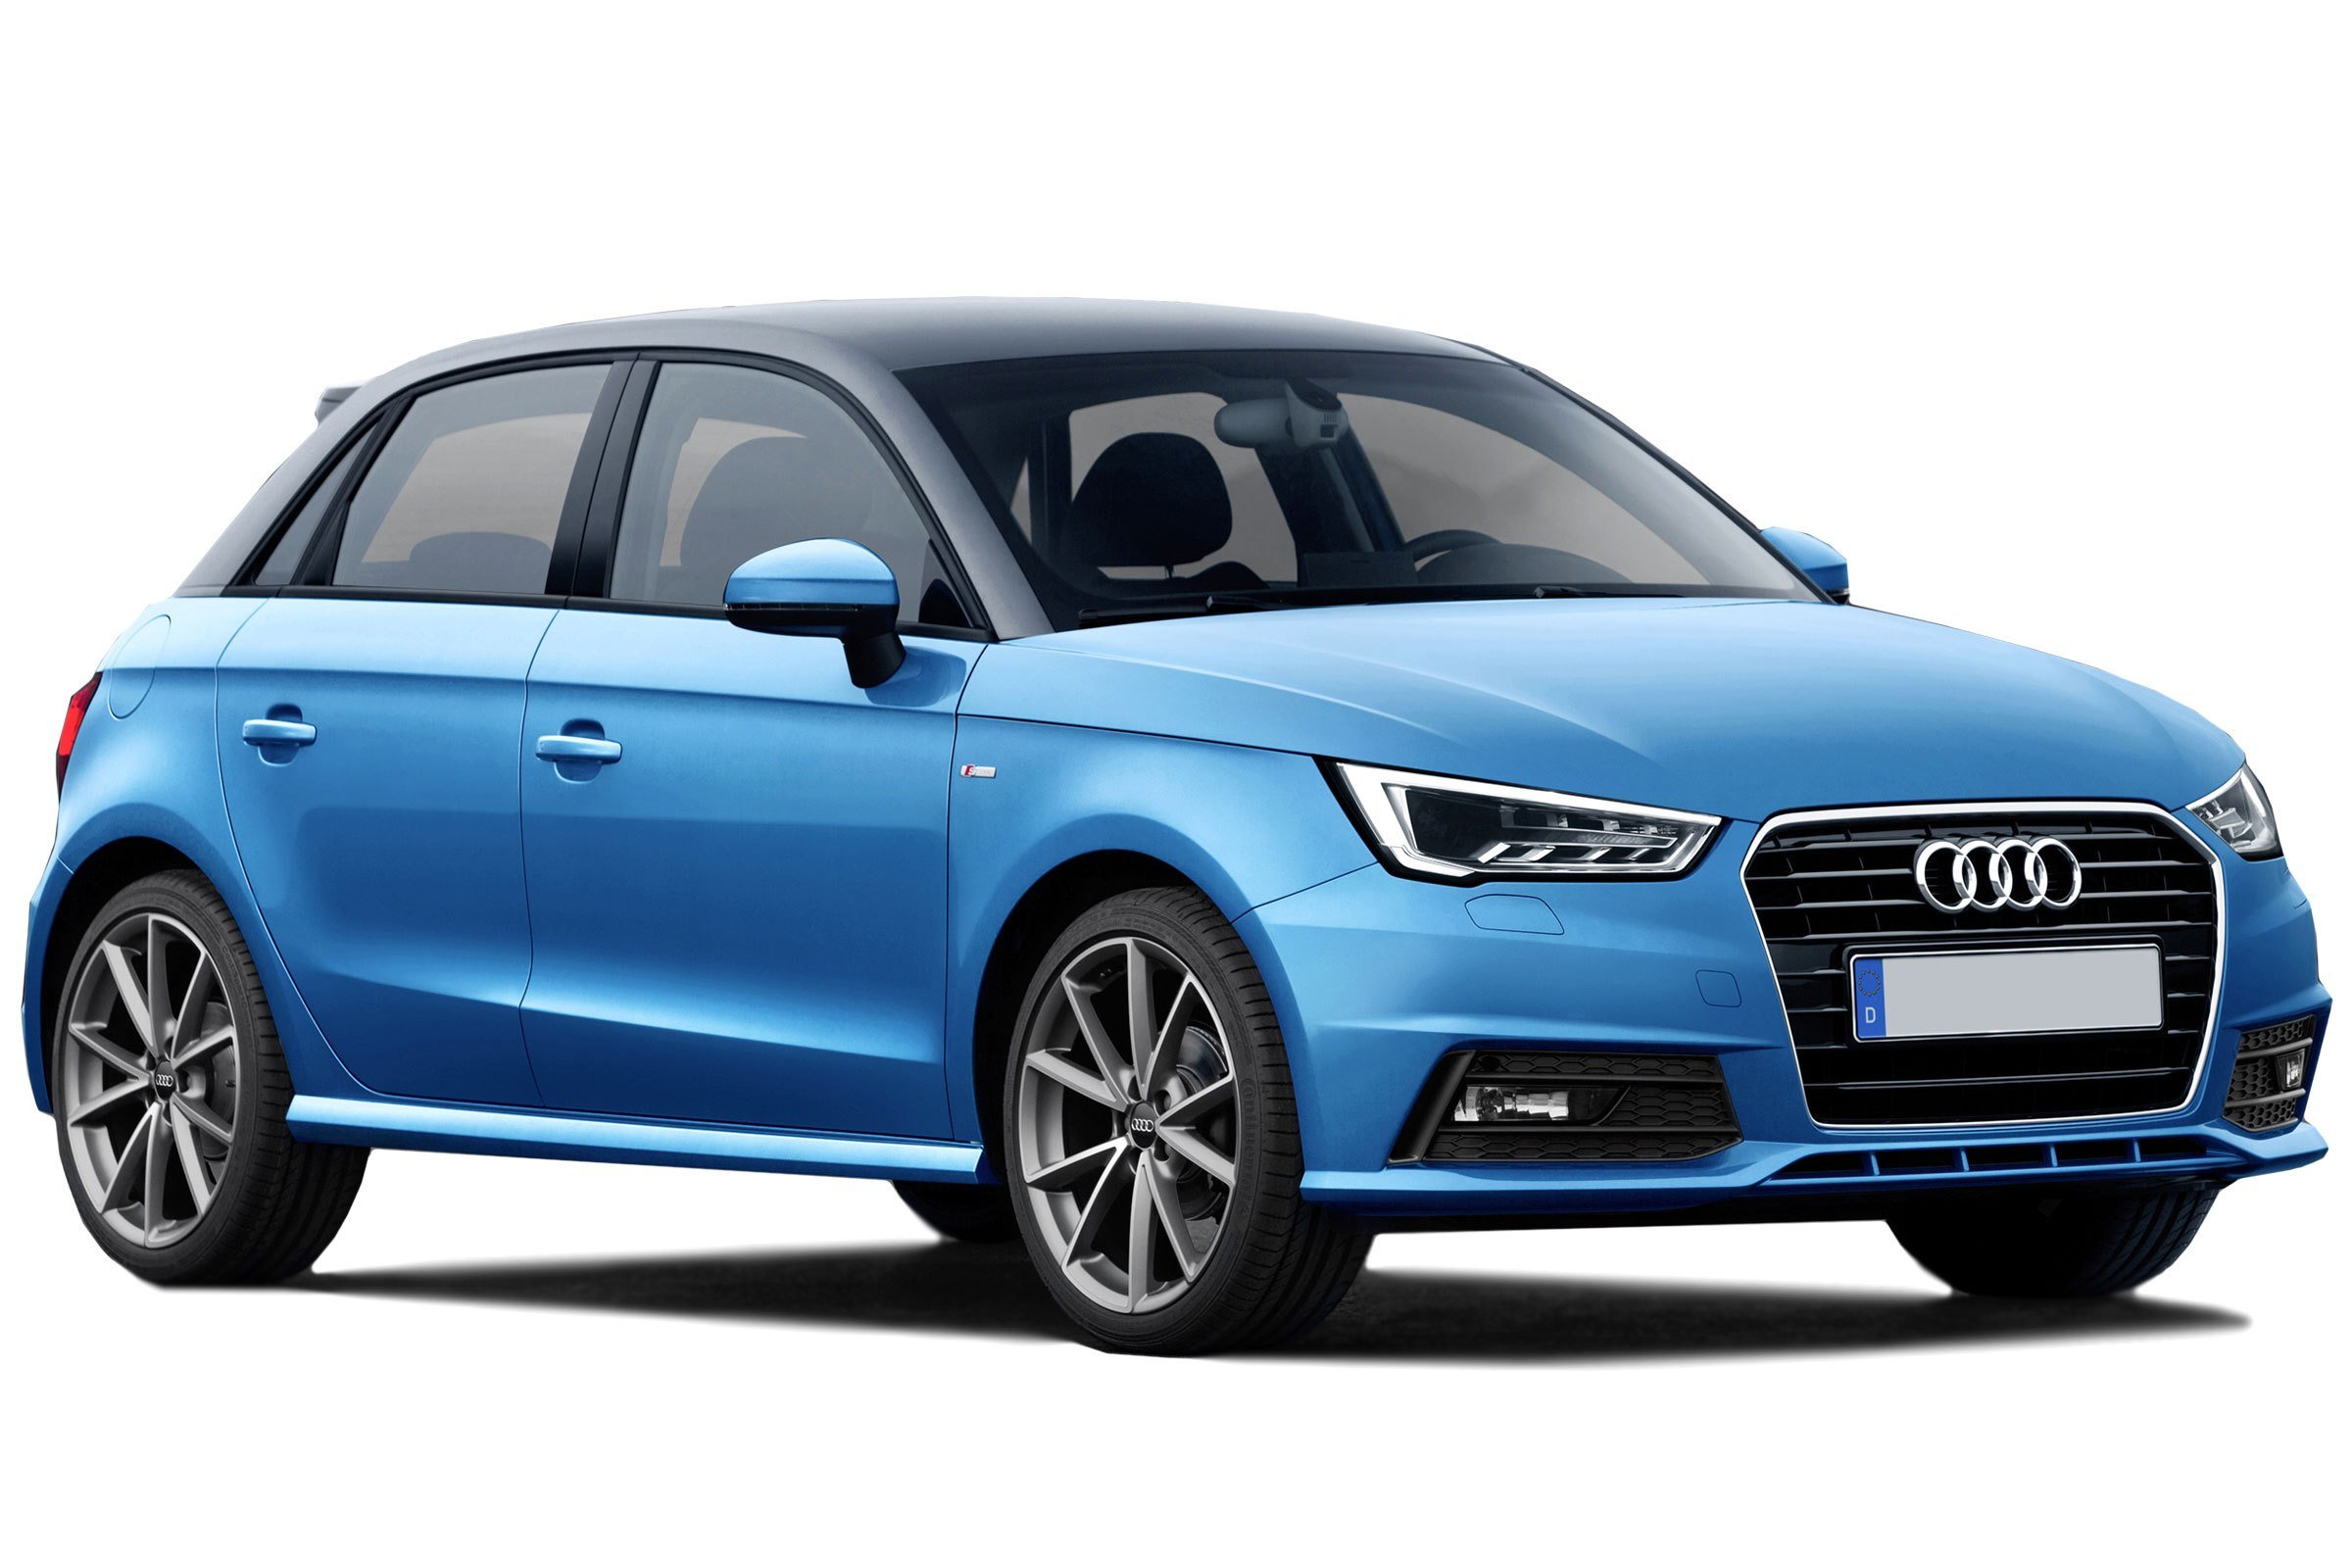 Latest Audi A1 Sportback Hatchback Prices Specifications Carbuyer Free Download